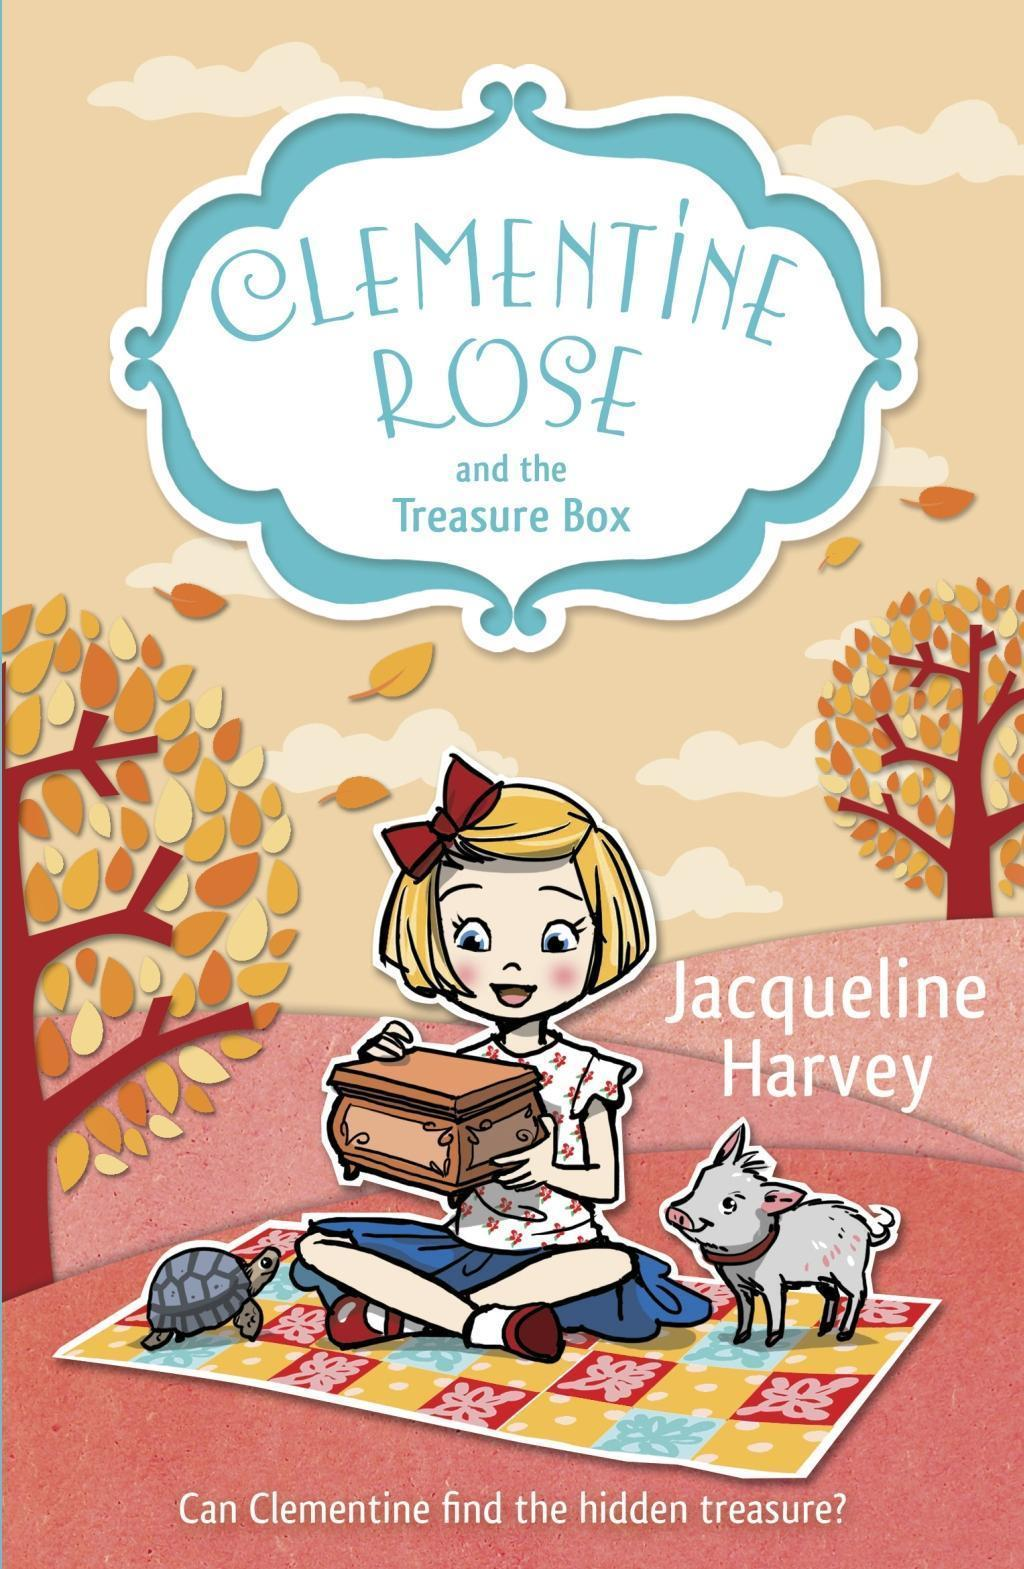 Clementine Rose and the Treasure Box